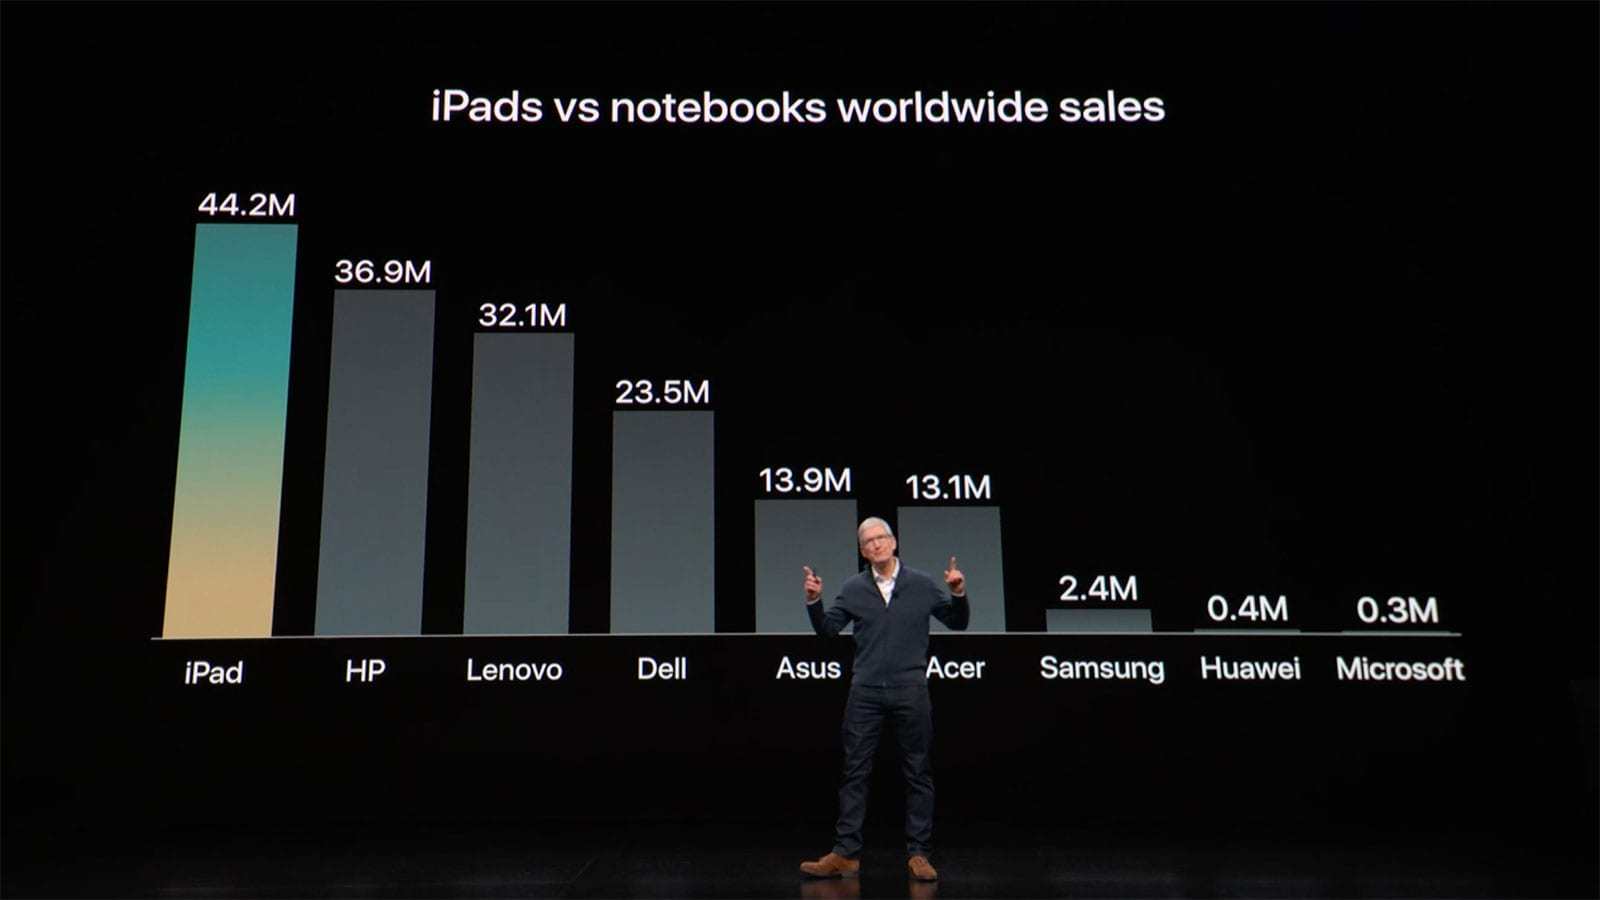 iPads vs notebooks